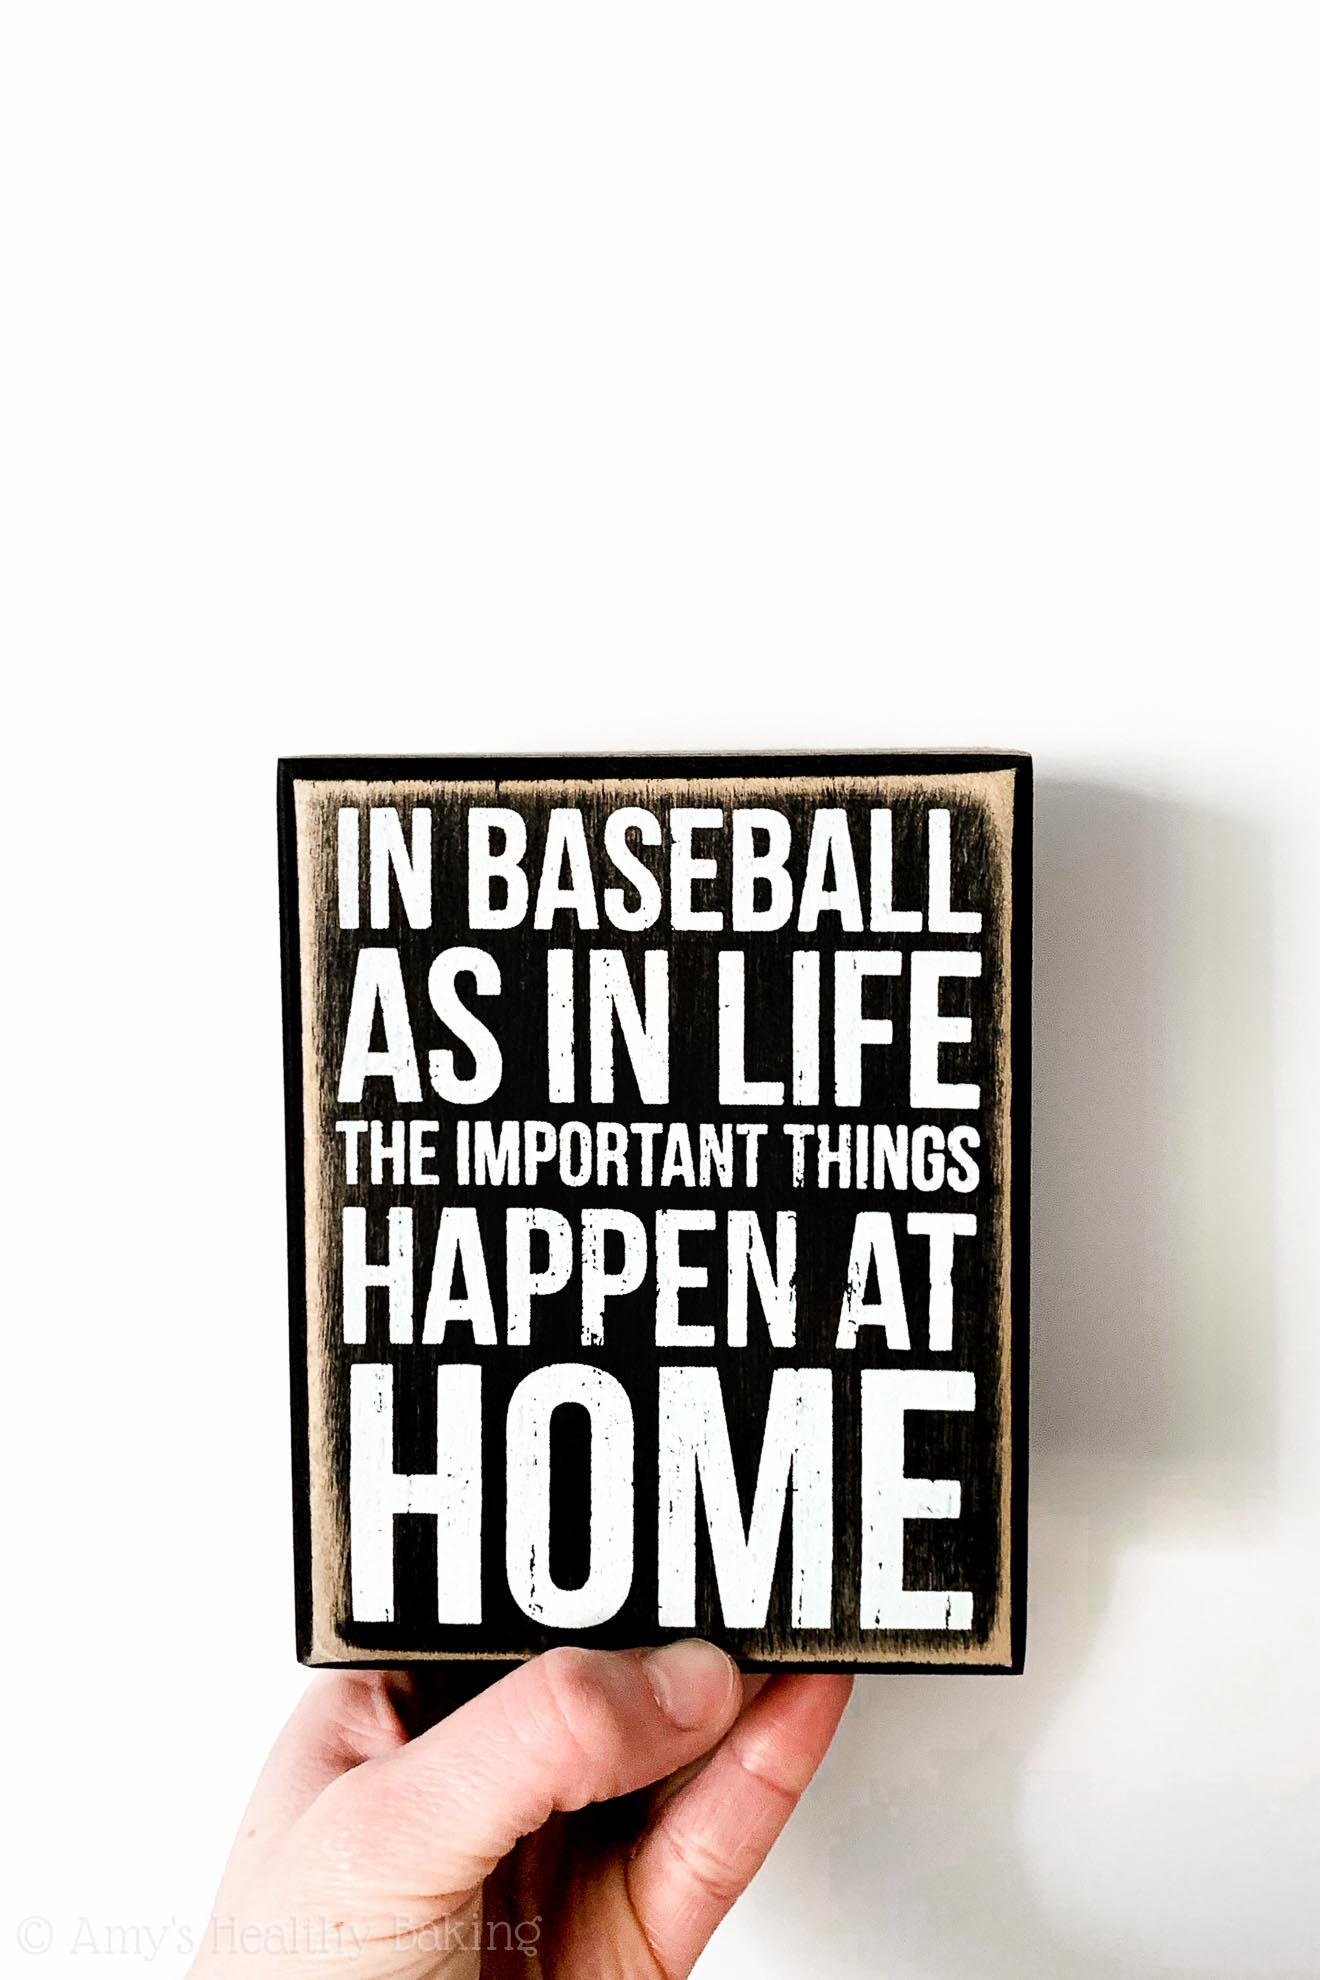 Small black sign: In baseball, as in life, the important things happen at home.